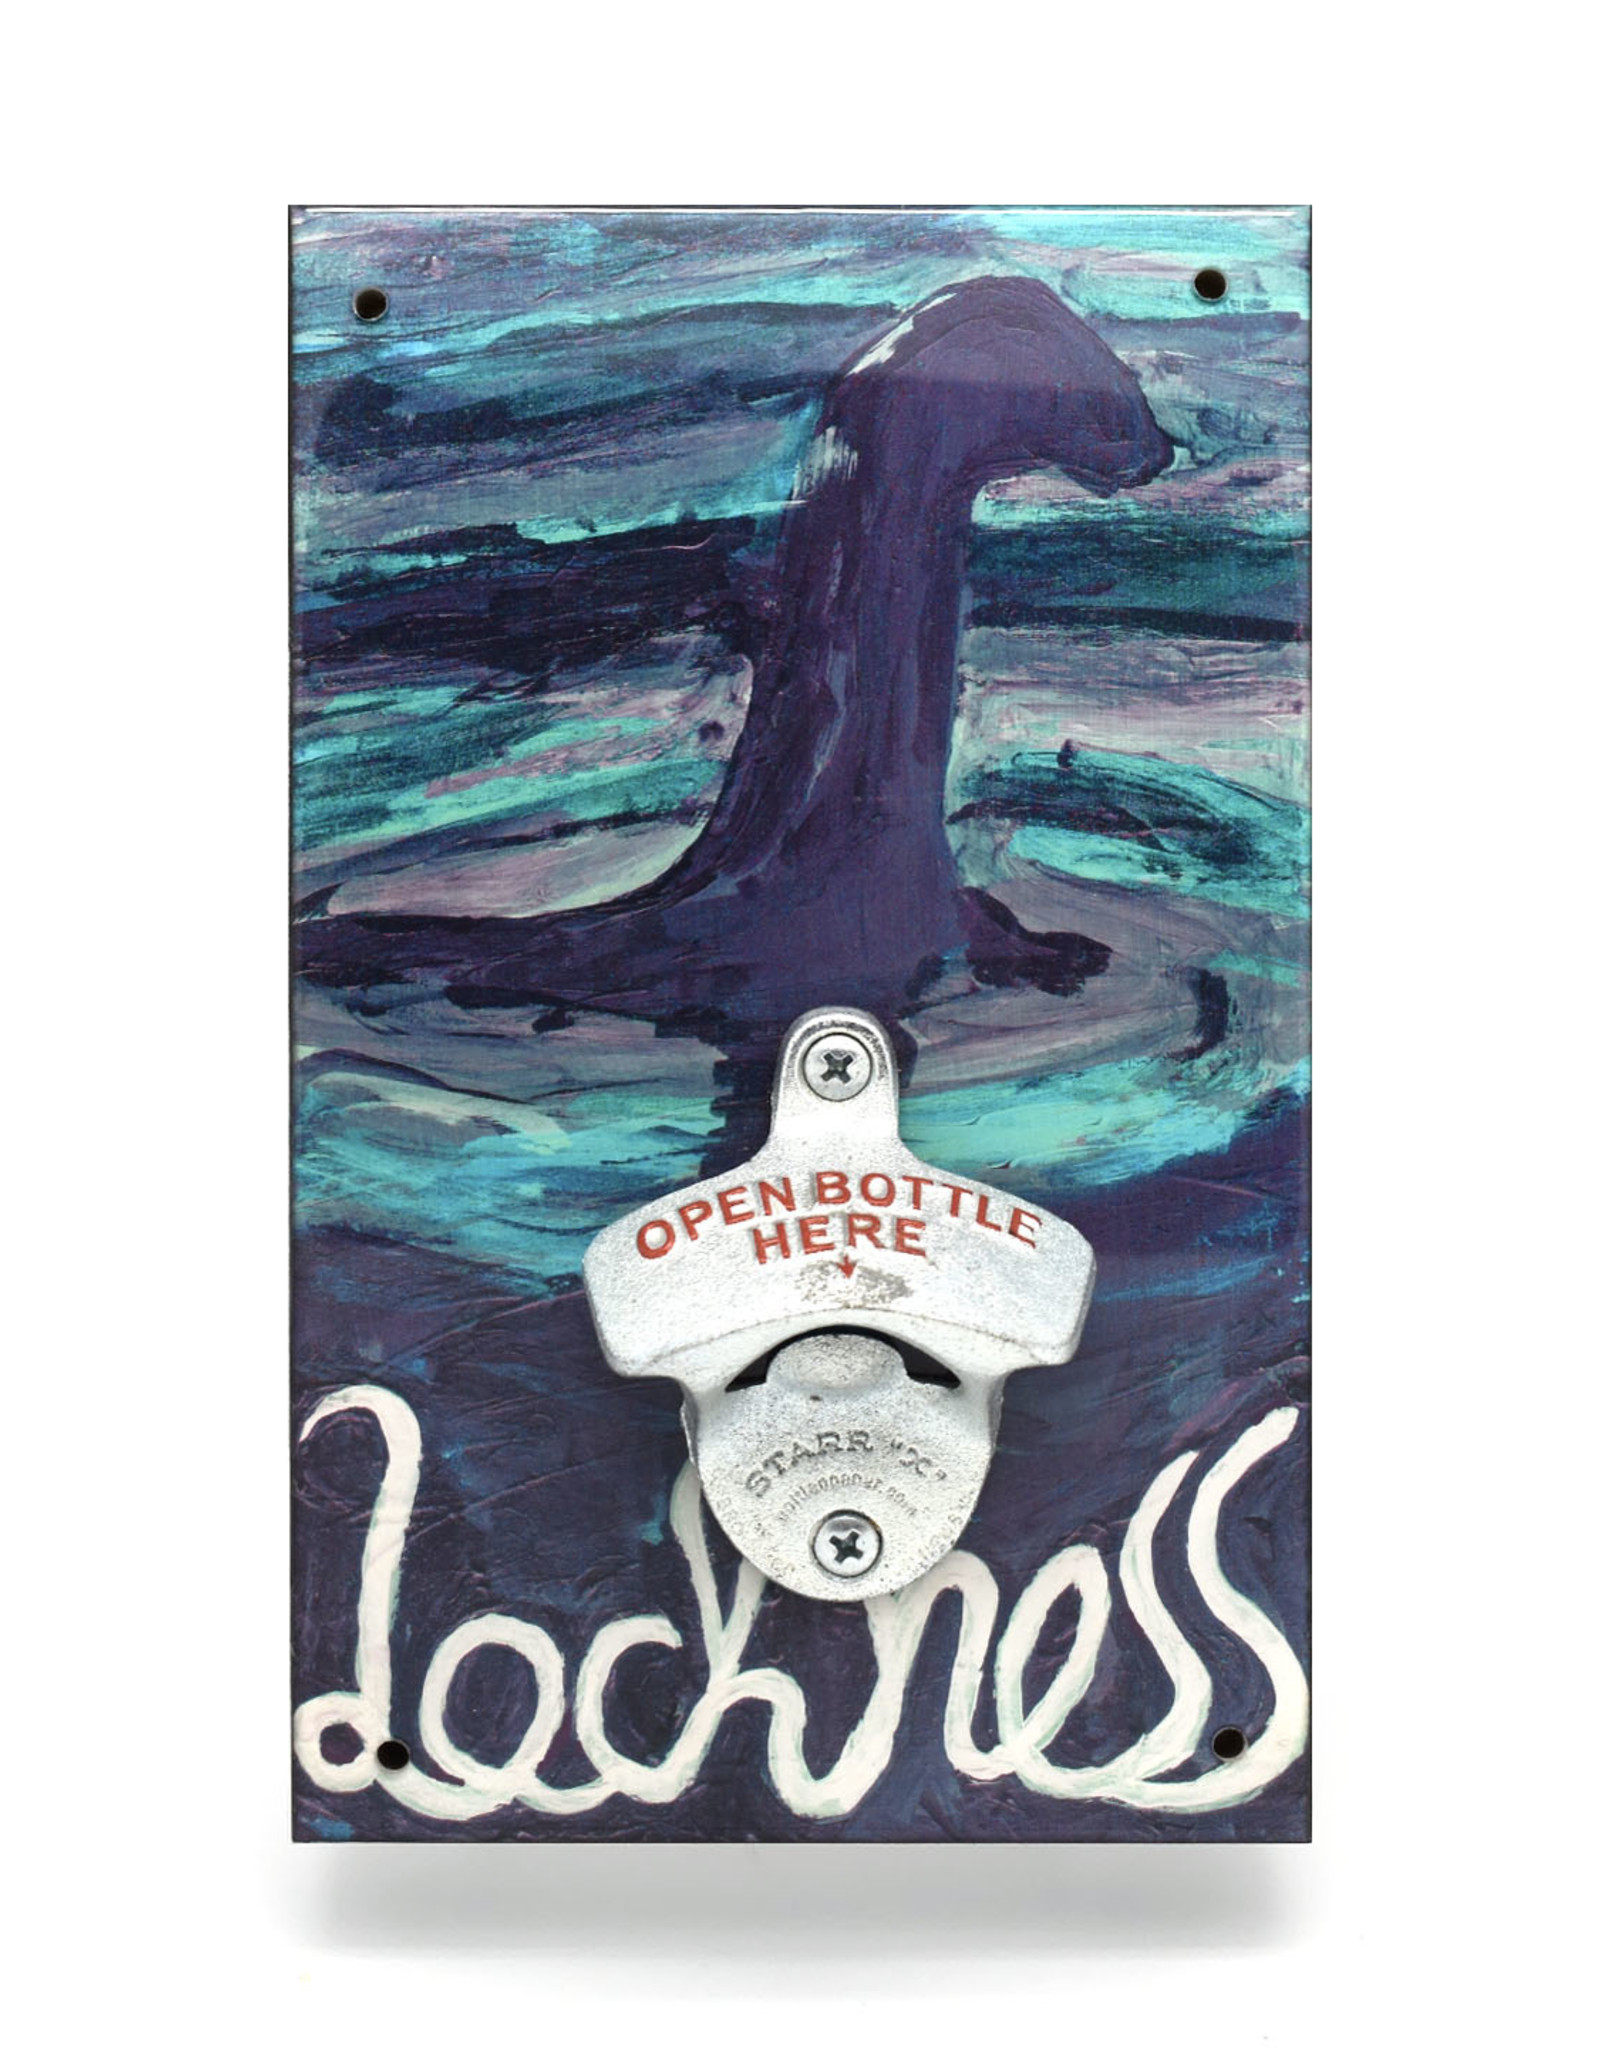 Loch Ness Monster Bottle Opener